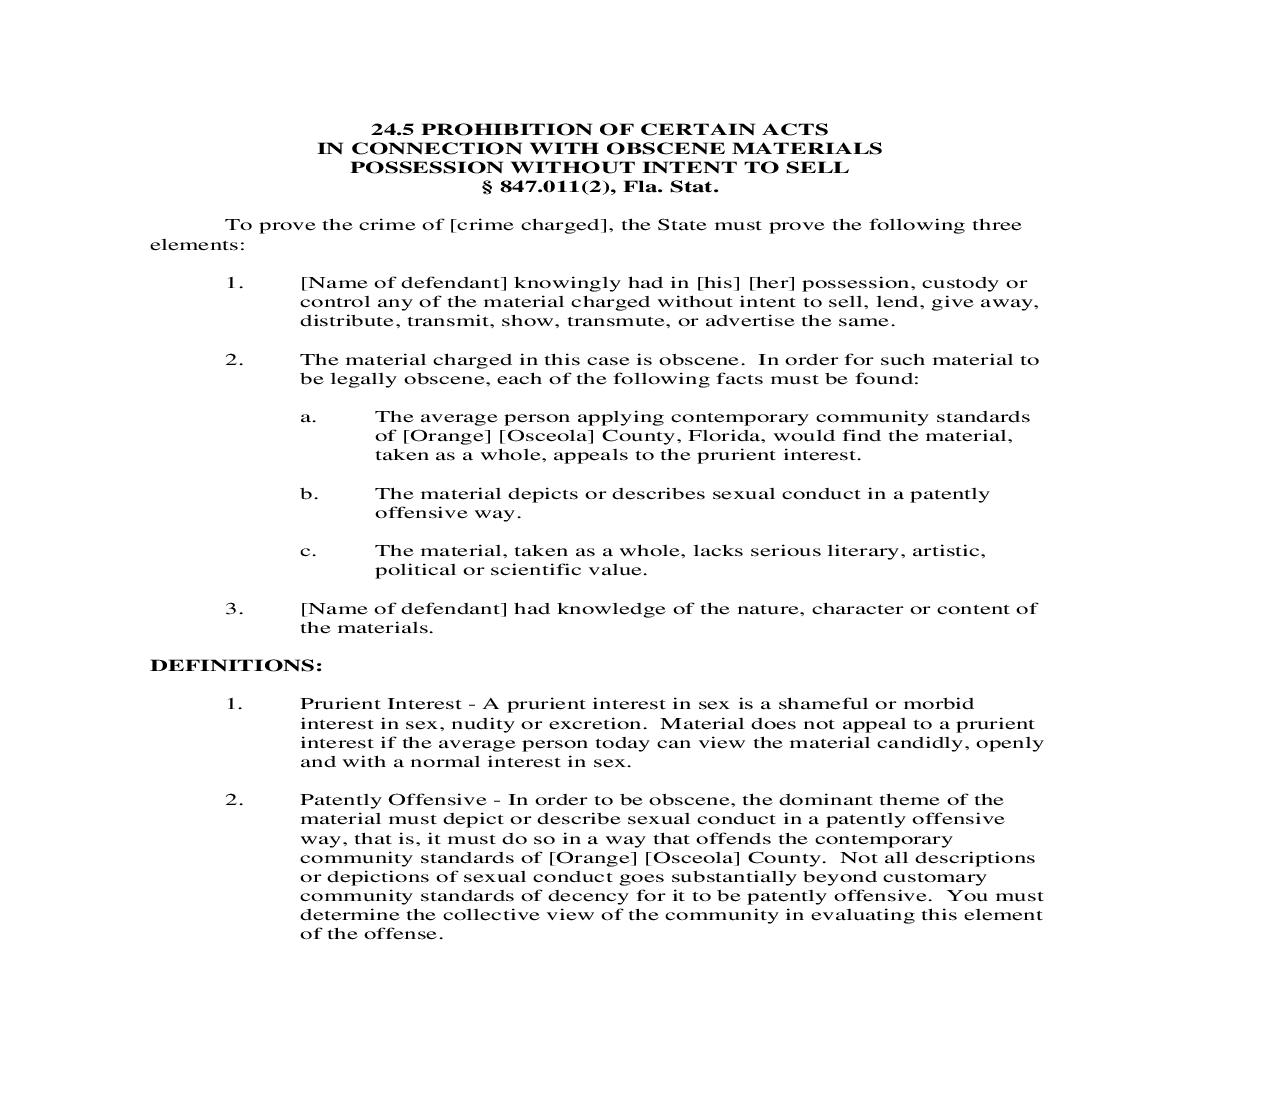 24.5. Prohibition Of Certain Acts In Connection With Obscene Materials Possession Without Intent To Sell | Pdf Doc Docx | Florida_JI